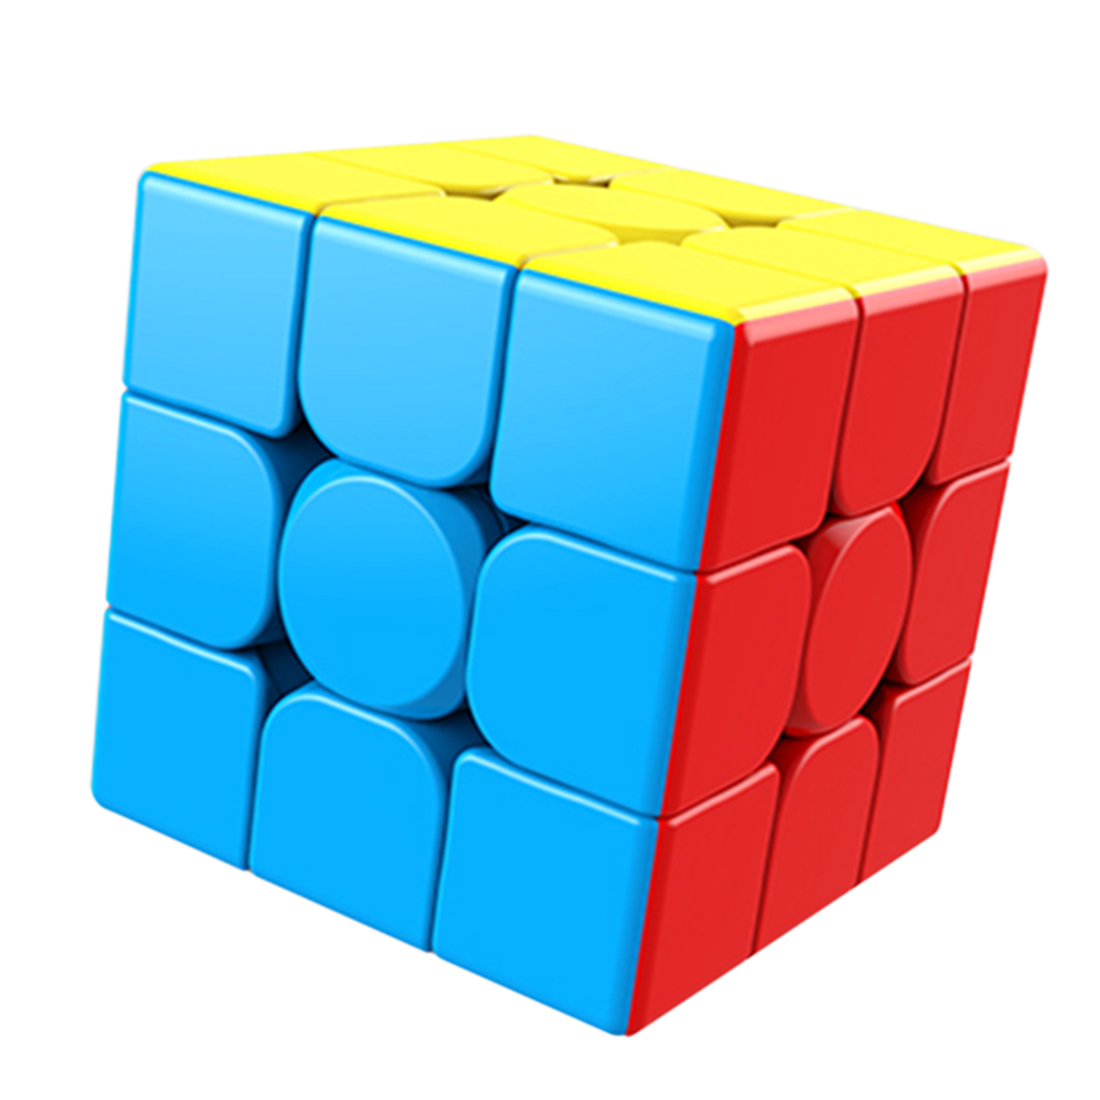 Moyu MeiLong MF8841 3x3x3 Magic Cube 3x3 Puzzle Speed Cube  - Colorful